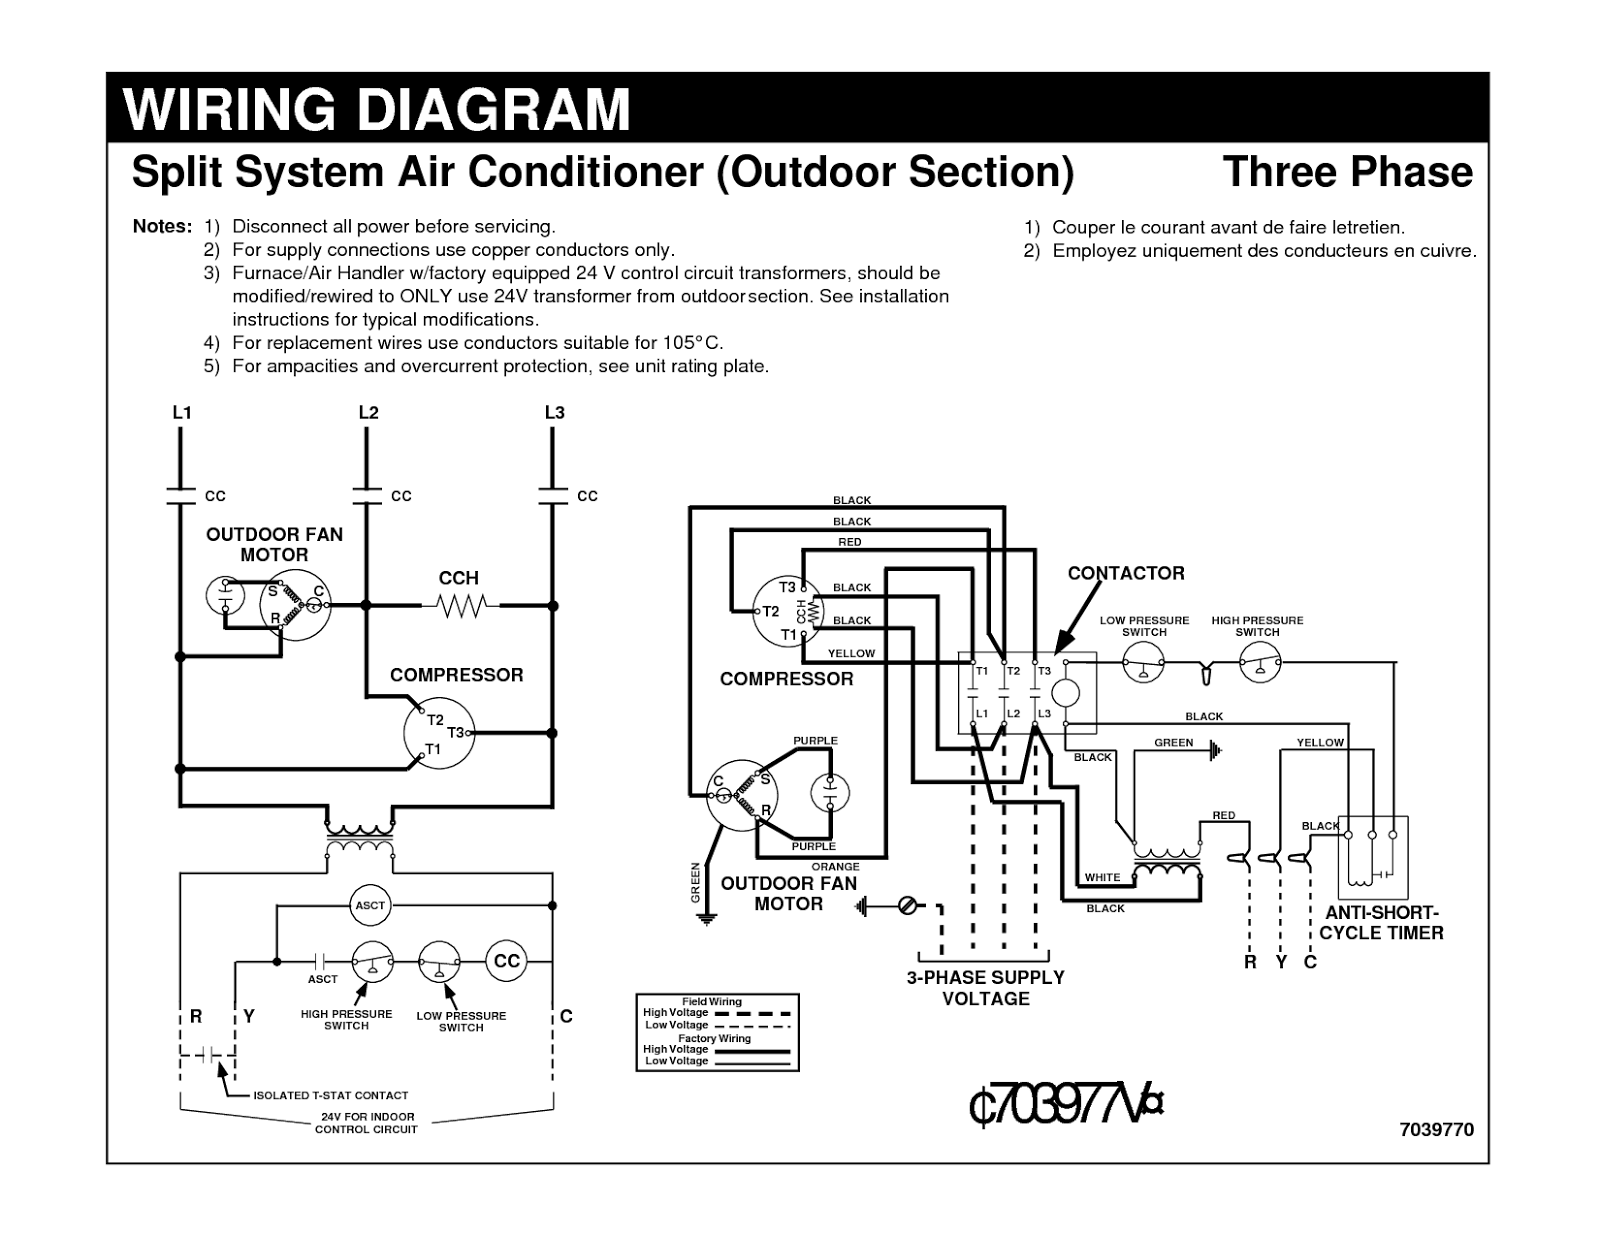 ge ac wiring diagram wiring diagrams ge ac window unit ge ac wiring [ 1600 x 1236 Pixel ]